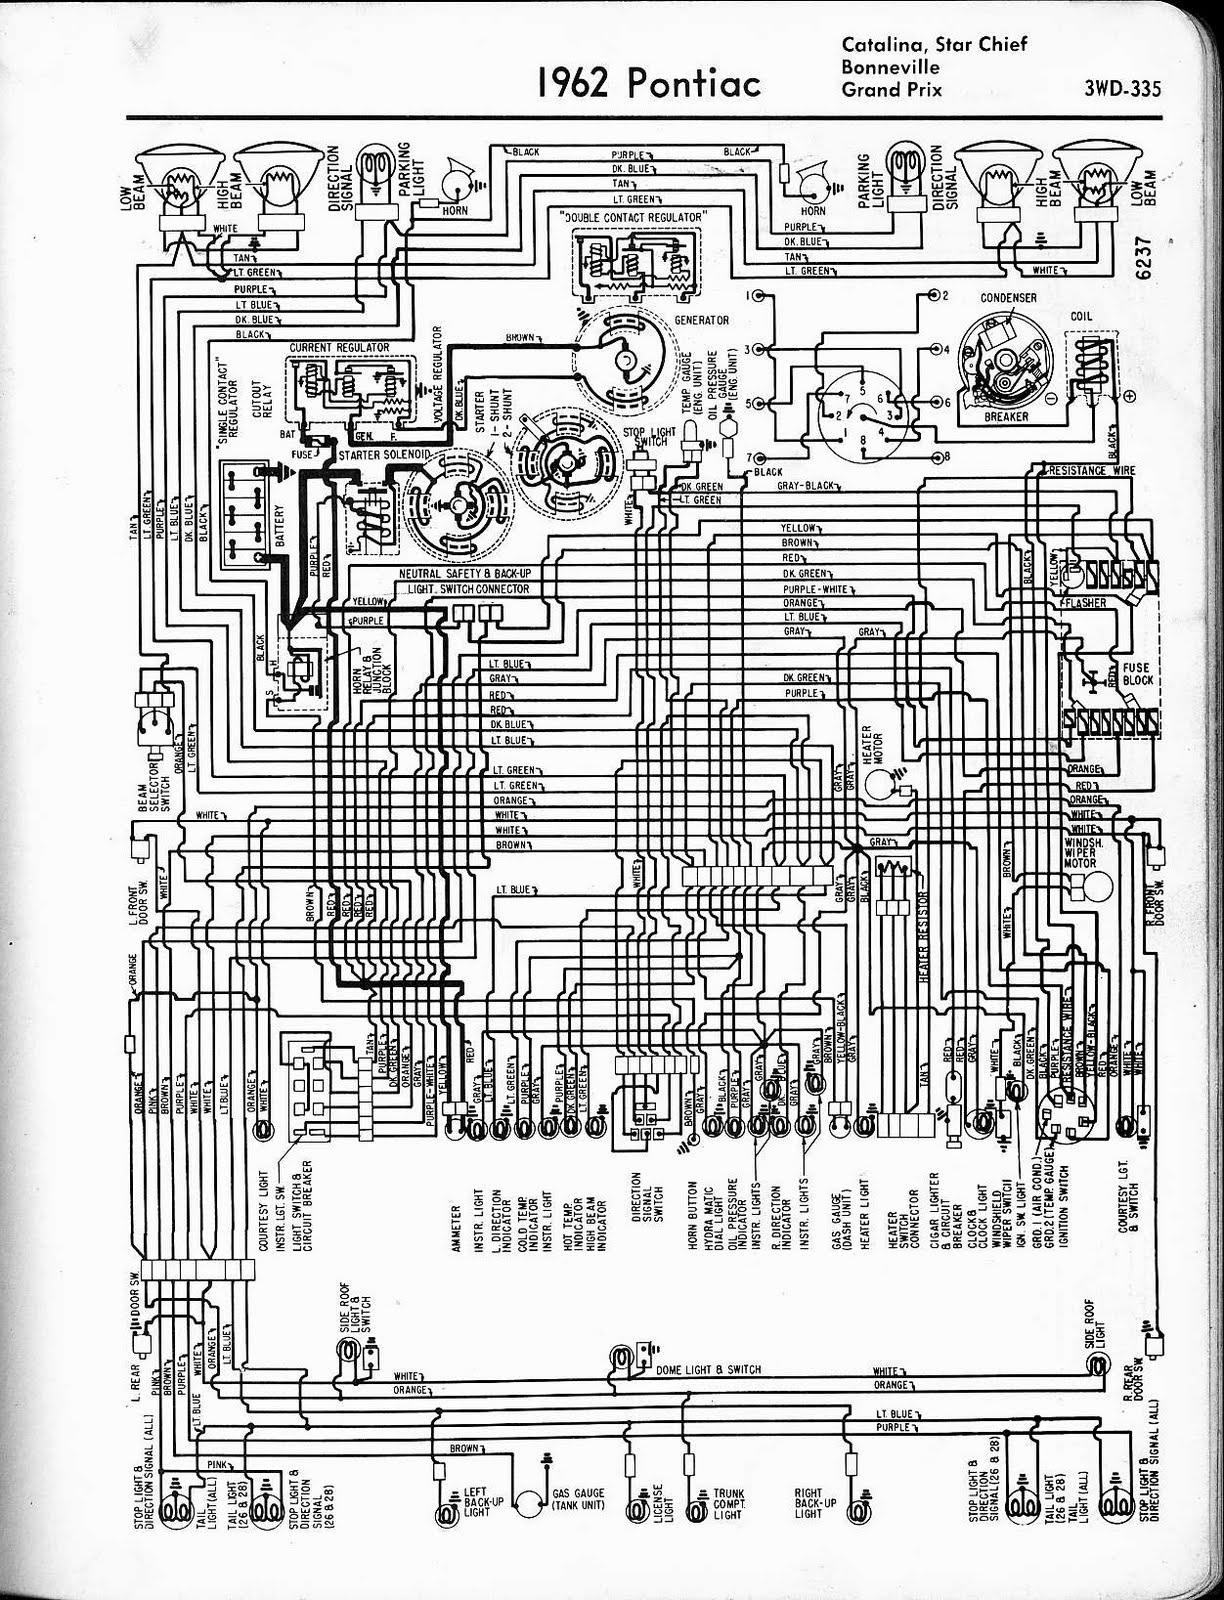 1967 Gto Ignition Switch Wiring Signal Stat 900 Diagram Understanding Pneumatic Schematics Free Download 1962 Pontiac Heater Diagrams 19622520pontiac2520catalina2520star